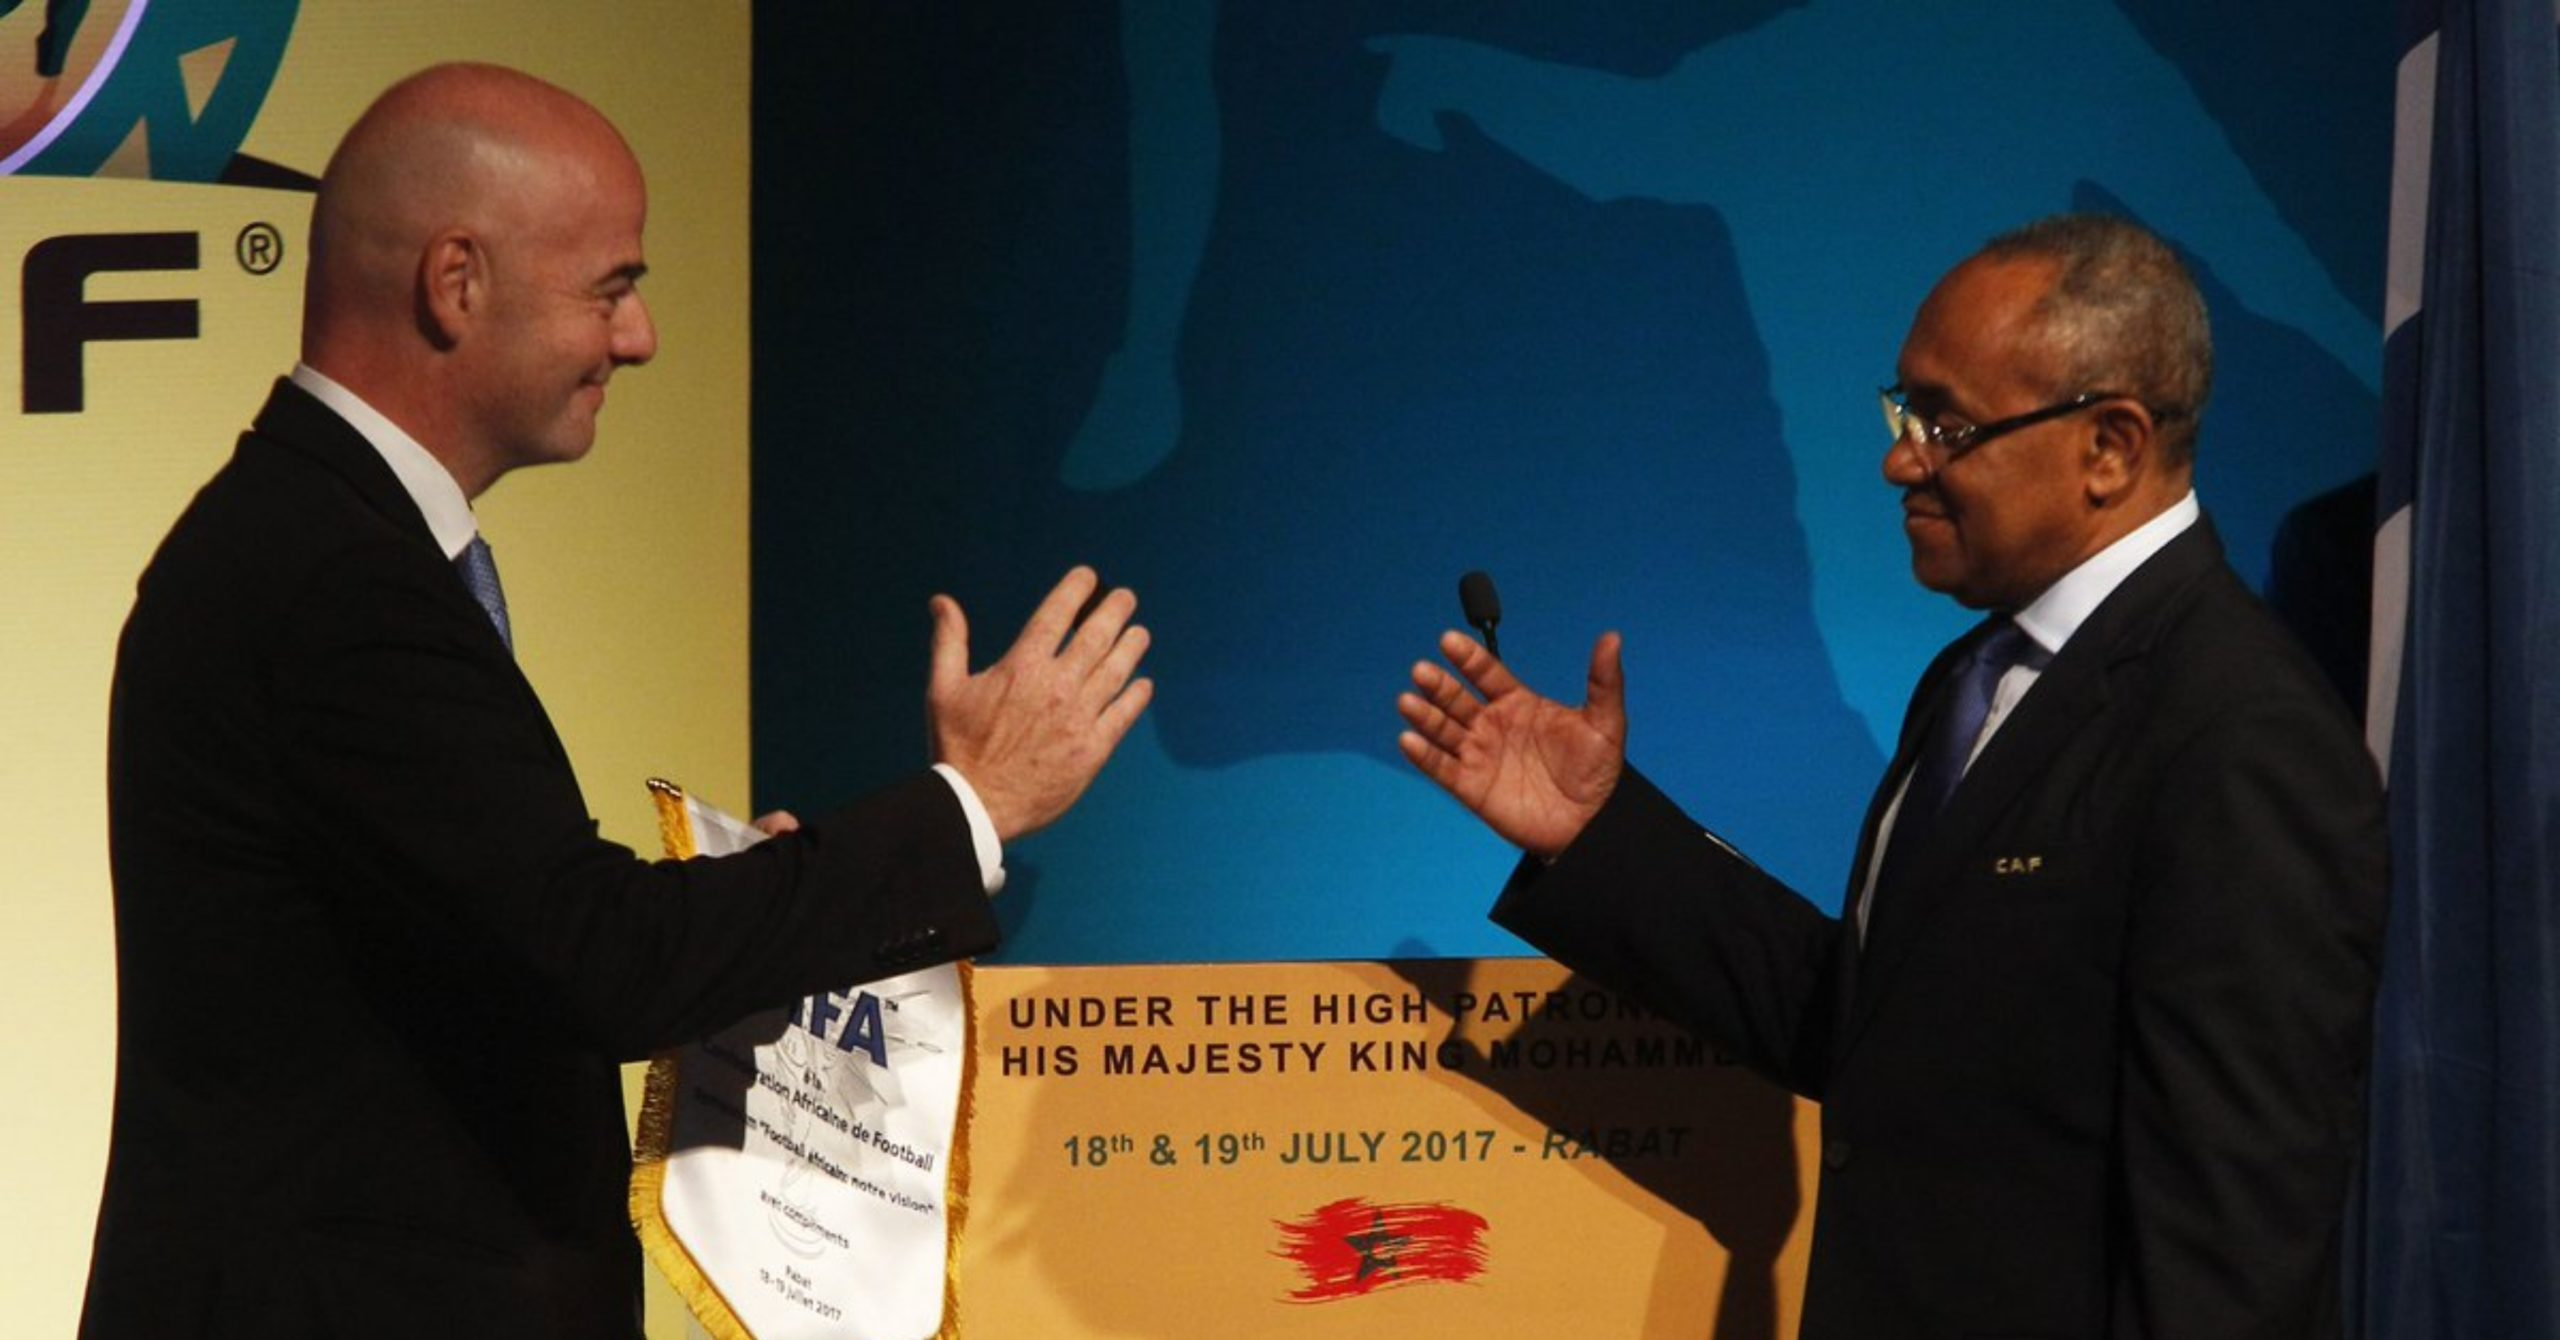 INFANTINO & AHMAD: IS THE BROMANCE FINALLY REALLY OVER? - Fifa Colonialism